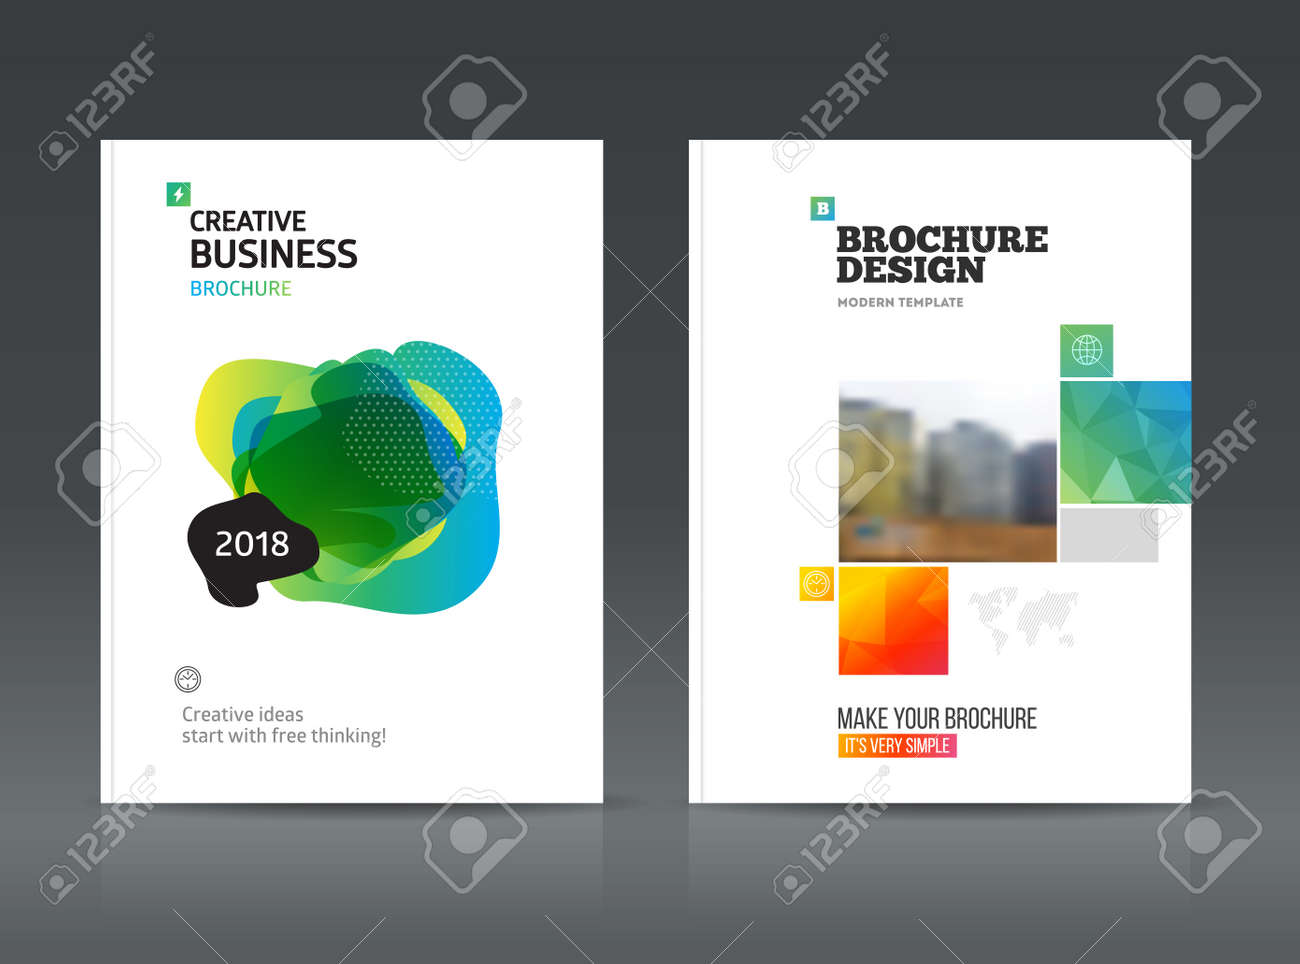 Abstract Business Brochure Design Vector Template In A4 Size     Abstract business Brochure design vector template in A4 size  For document  or book cover